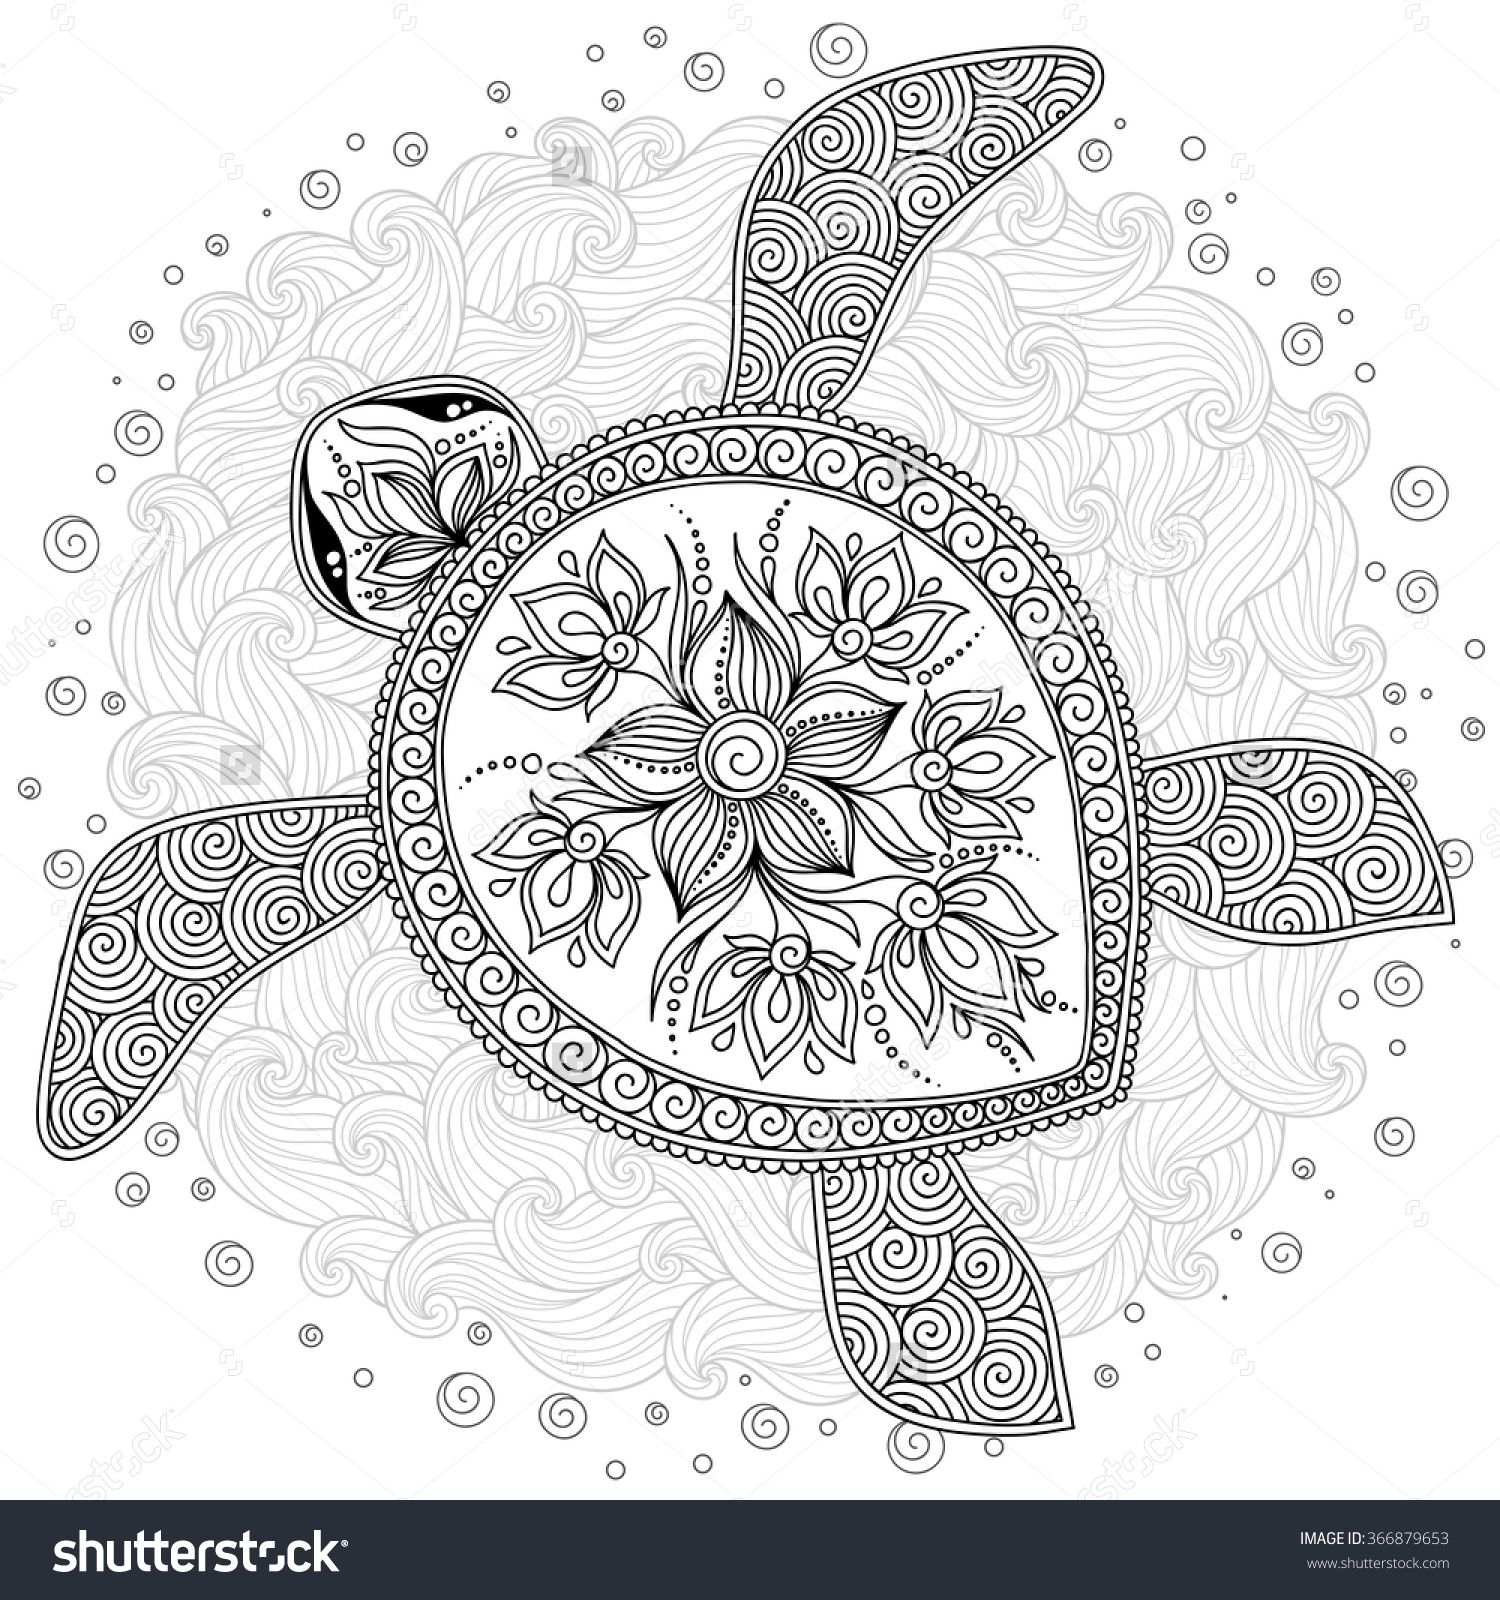 Adults colouring book pages - Coloring Pages Hand Drawn Sea Turtle Mascot For Adult Coloring